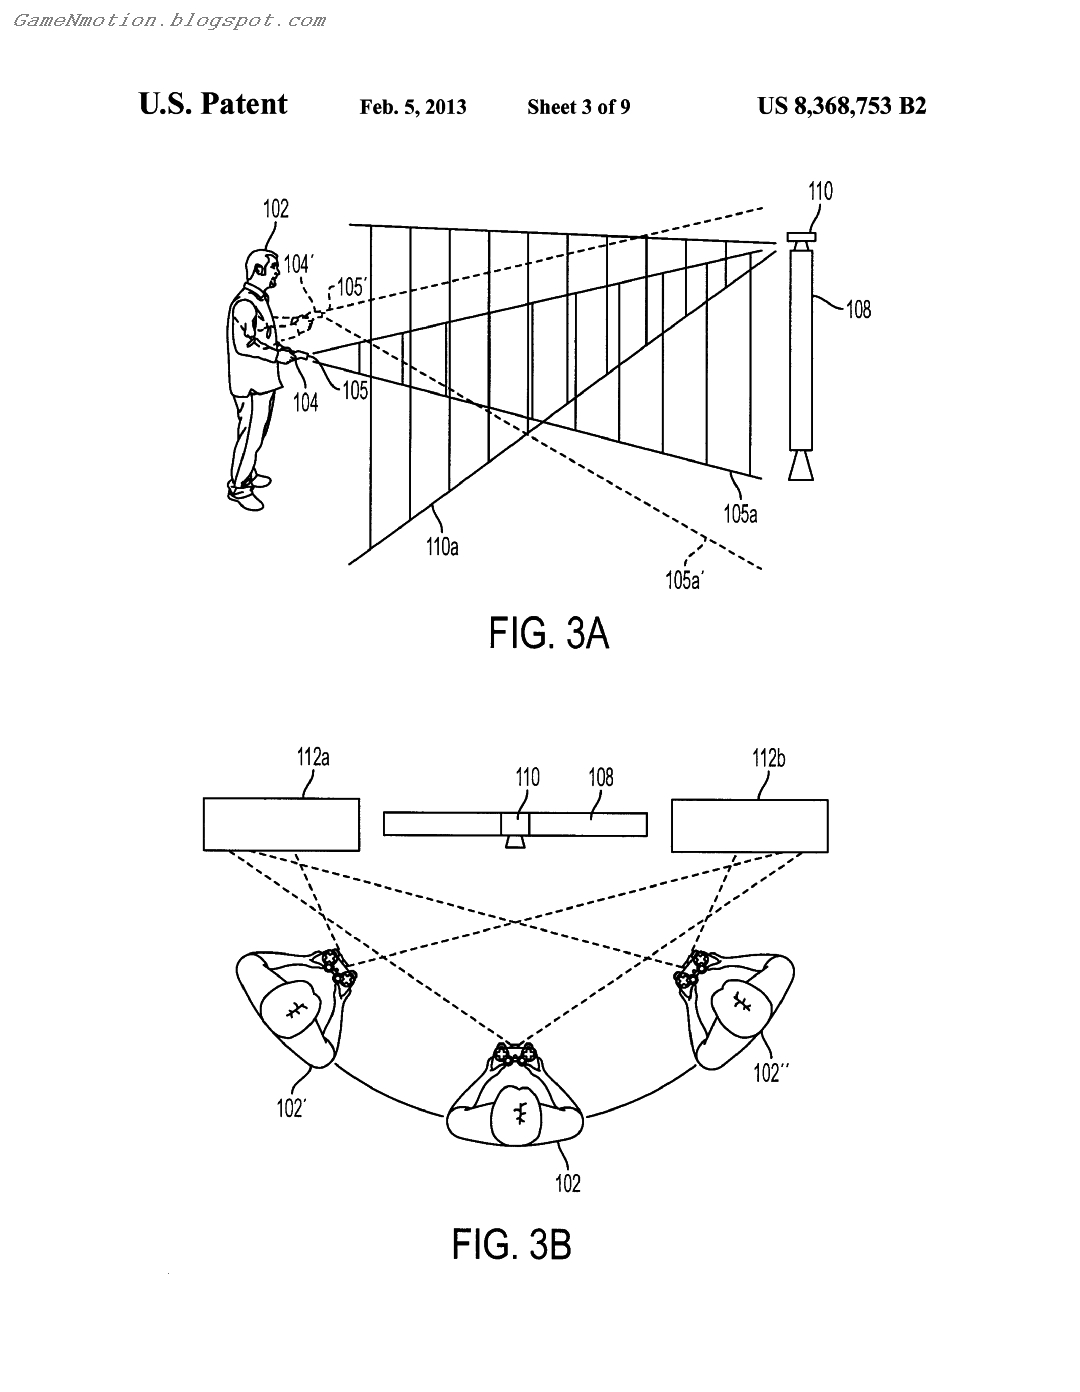 Game'N'Motion: Sony Patent: Controller with an Integrated